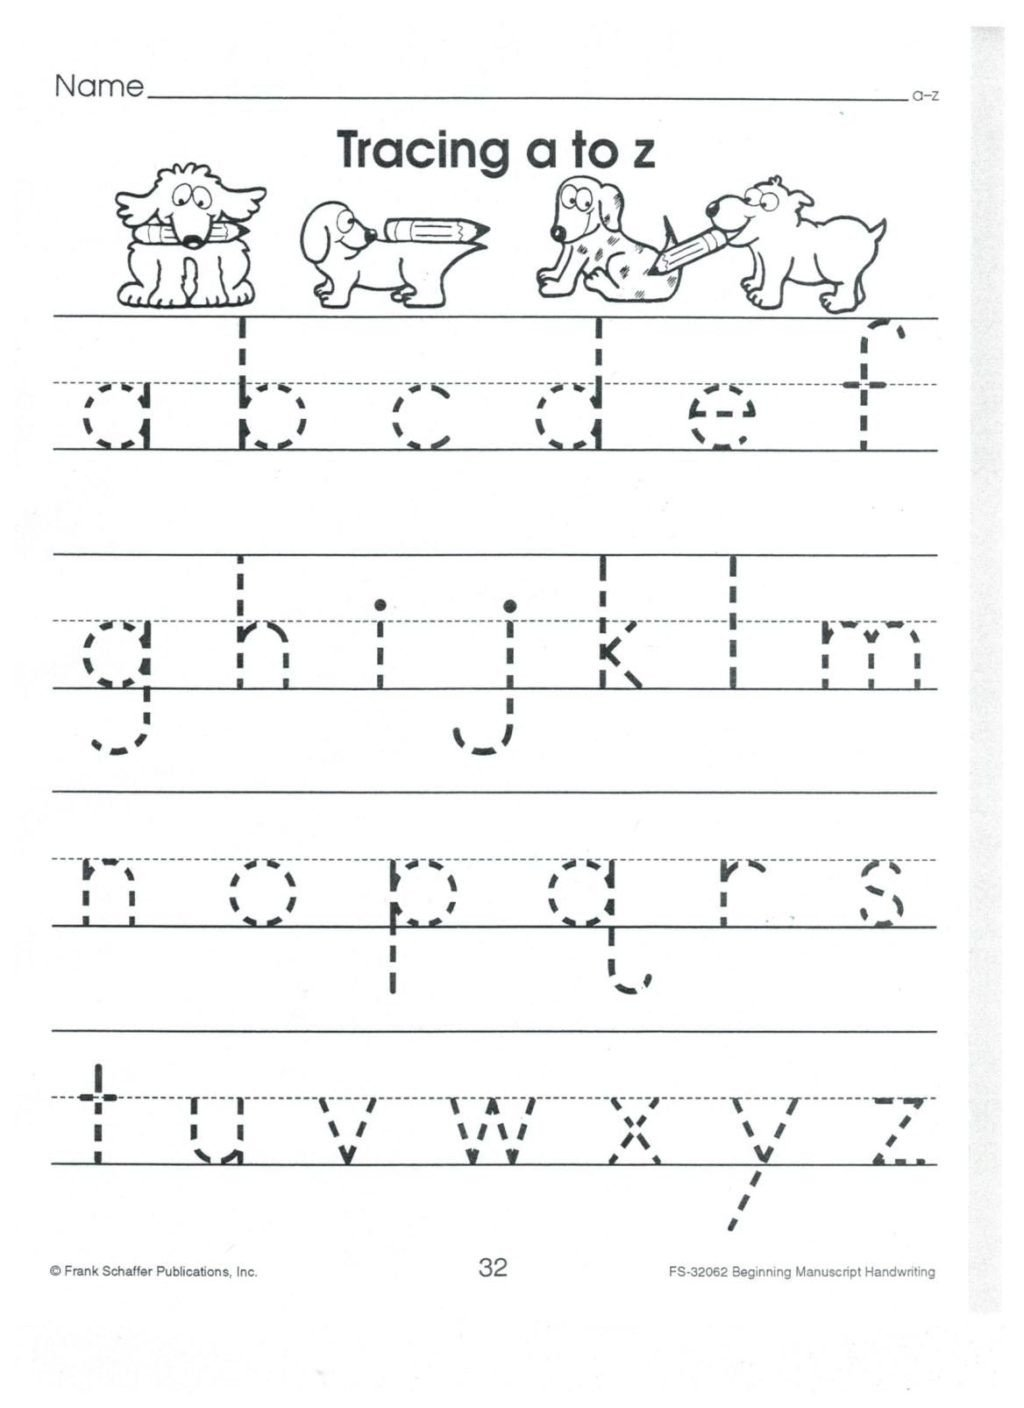 Lowercase Alphabet Tracing Worksheets Worksheet English Print to Z Lower Case Alphabet Tracing